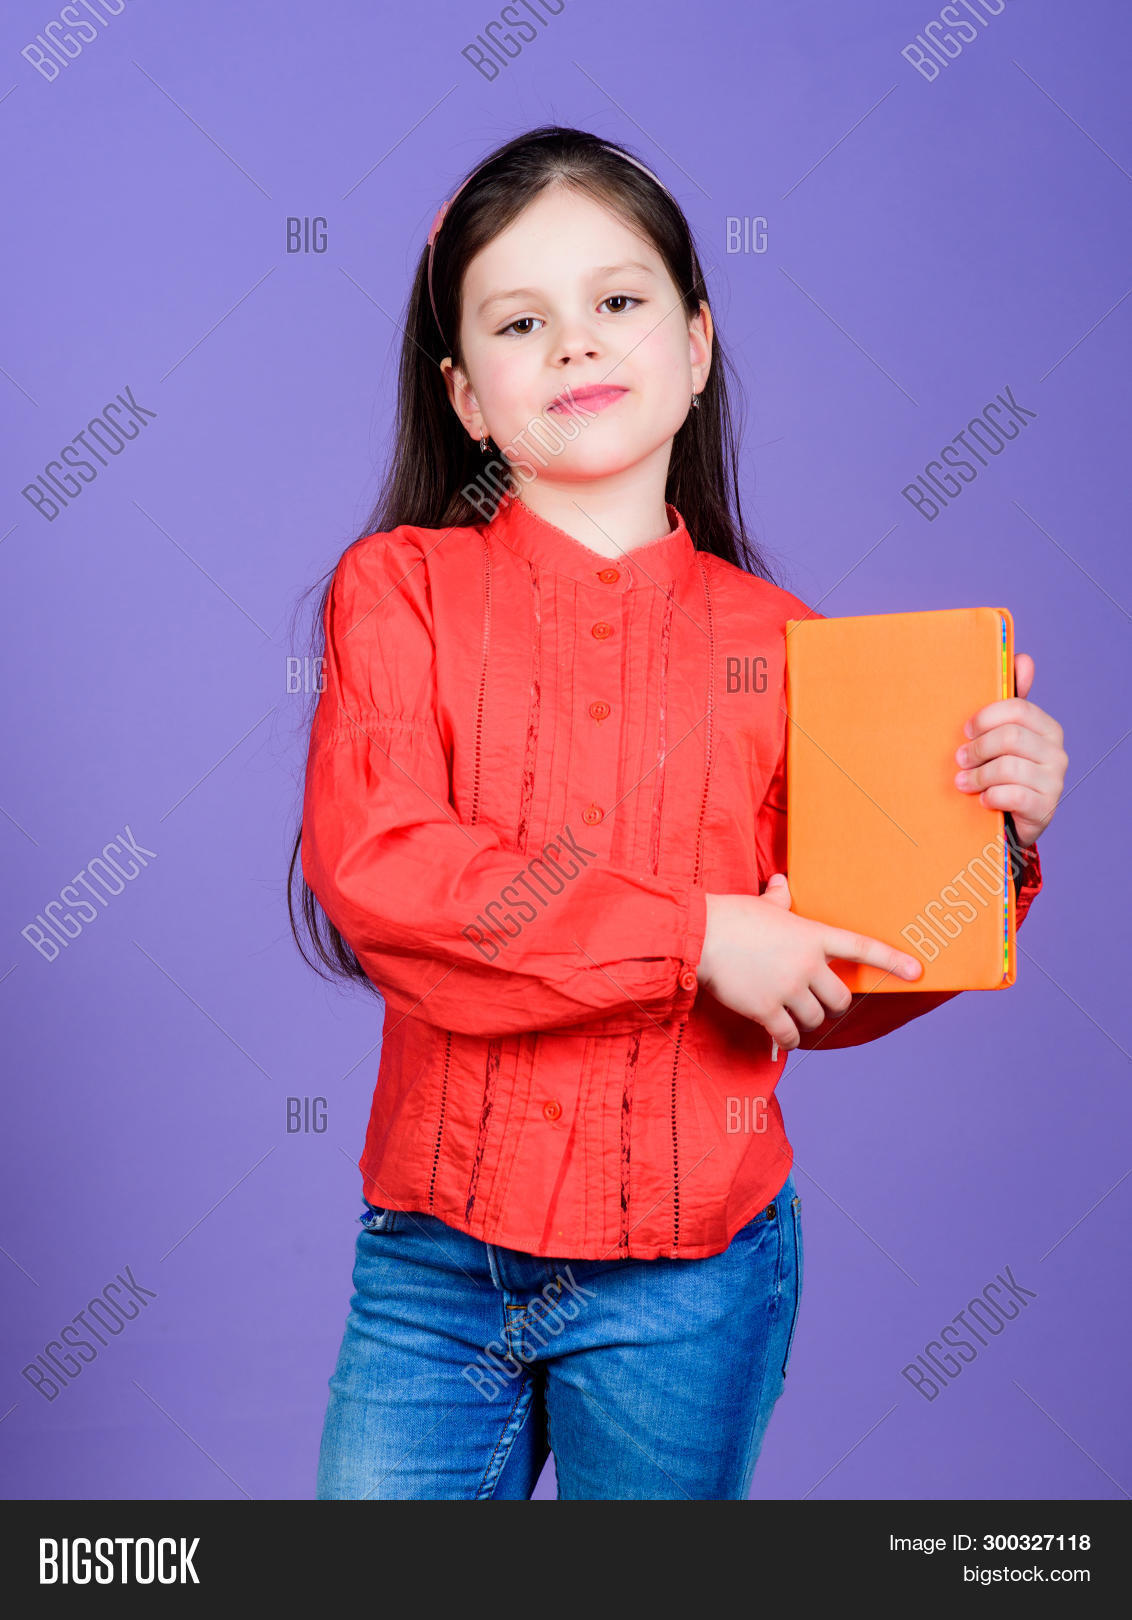 Confident In Her Knowledge. Adorable Small Girl Holding Book With Orange Cover. Cute Little Child Wi